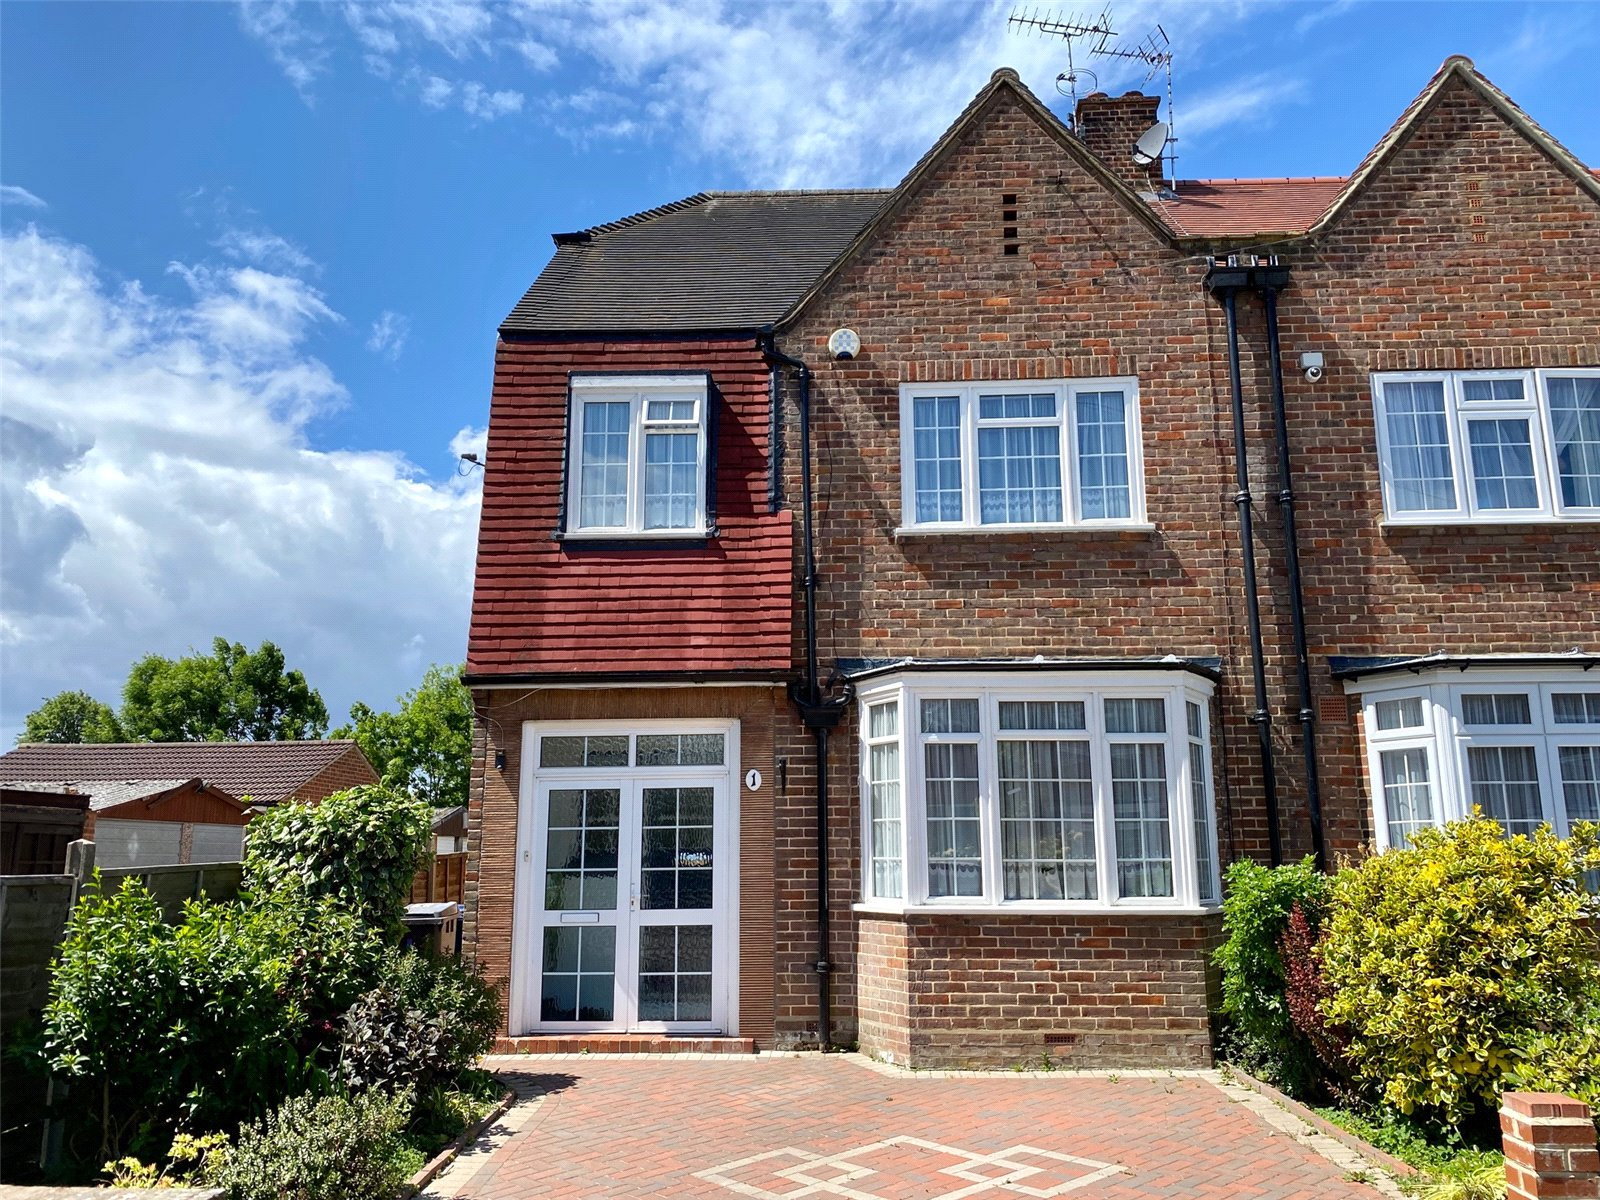 3 bed house for sale in London, N12 9ND  - Property Image 1